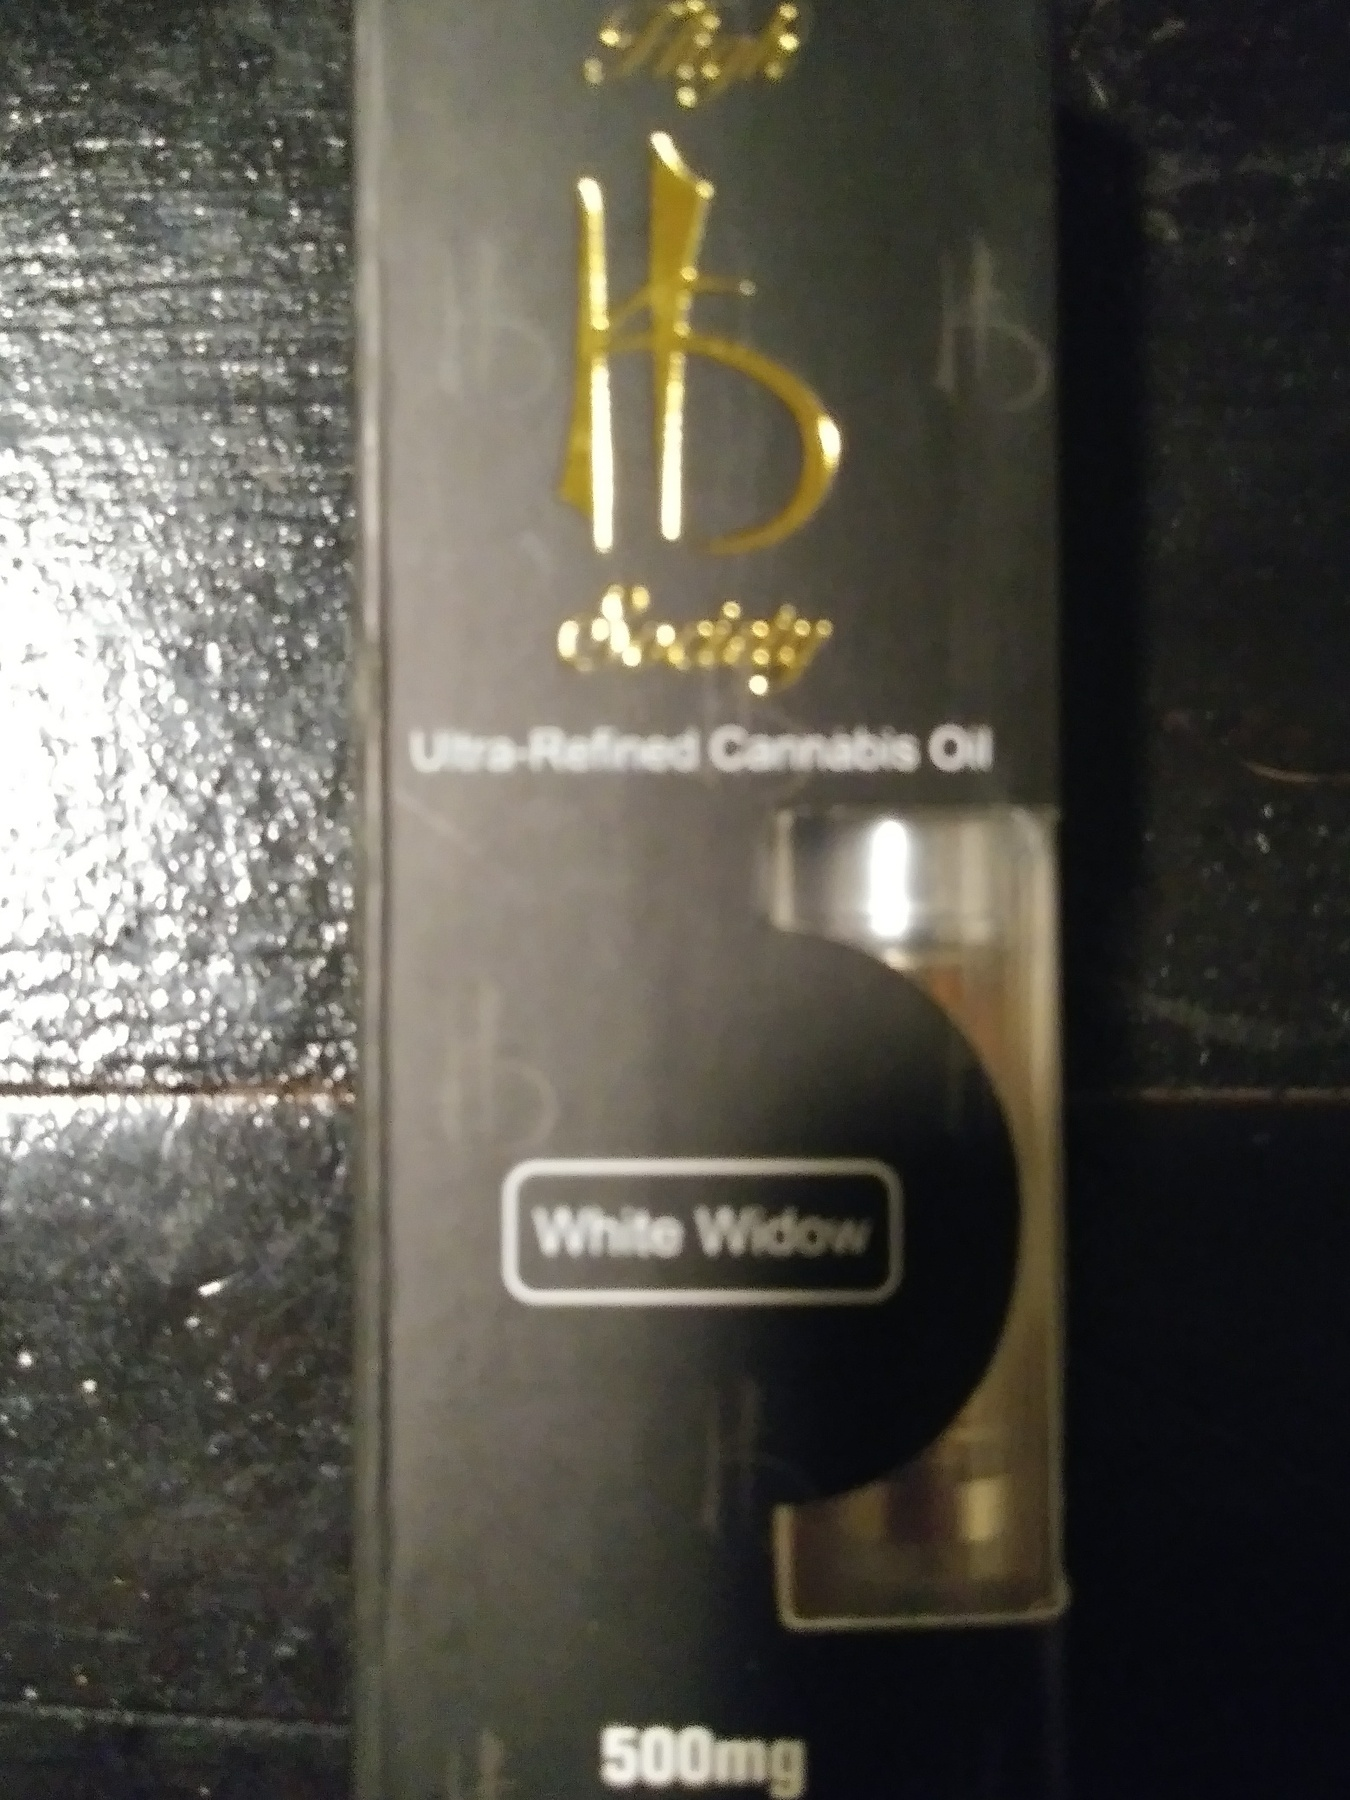 High Society White Widow Cartridge (500mg)